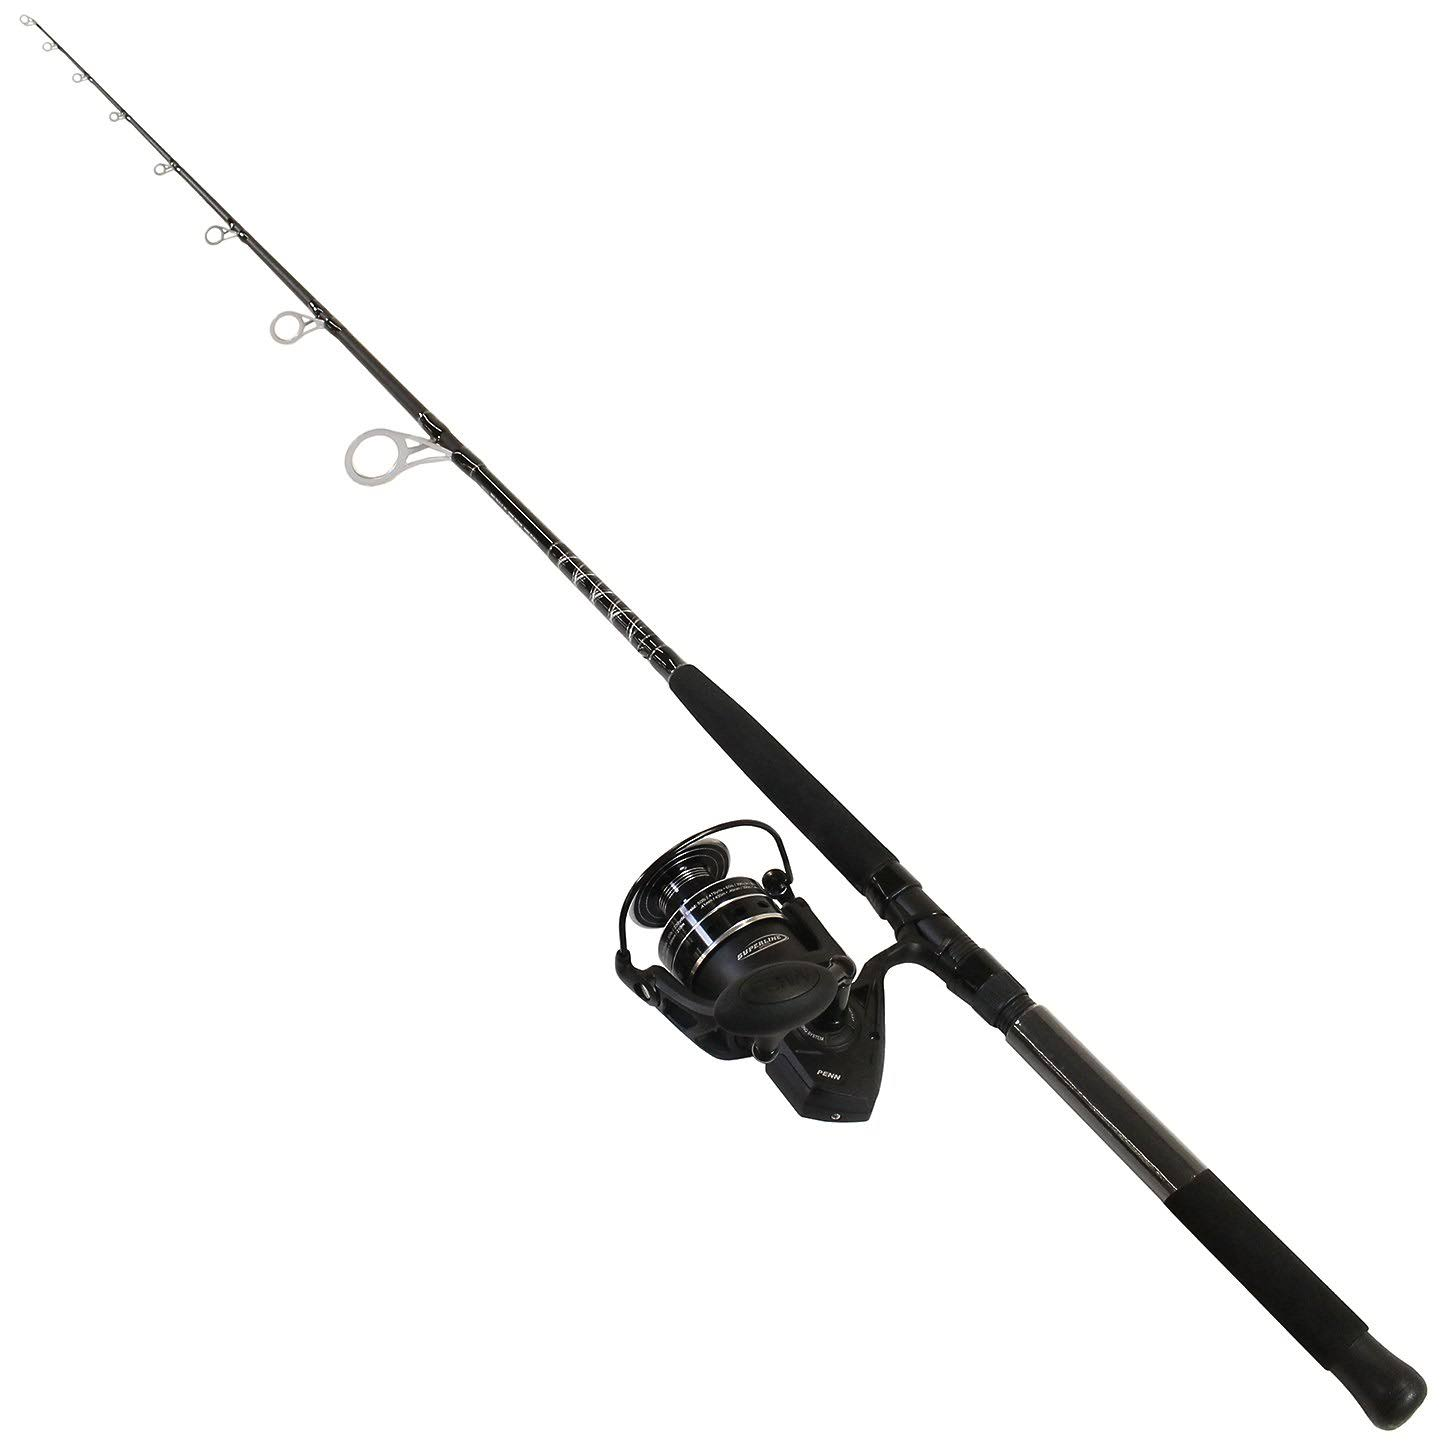 Penn Pursuit III Spinning Combo - PURIII8000701H